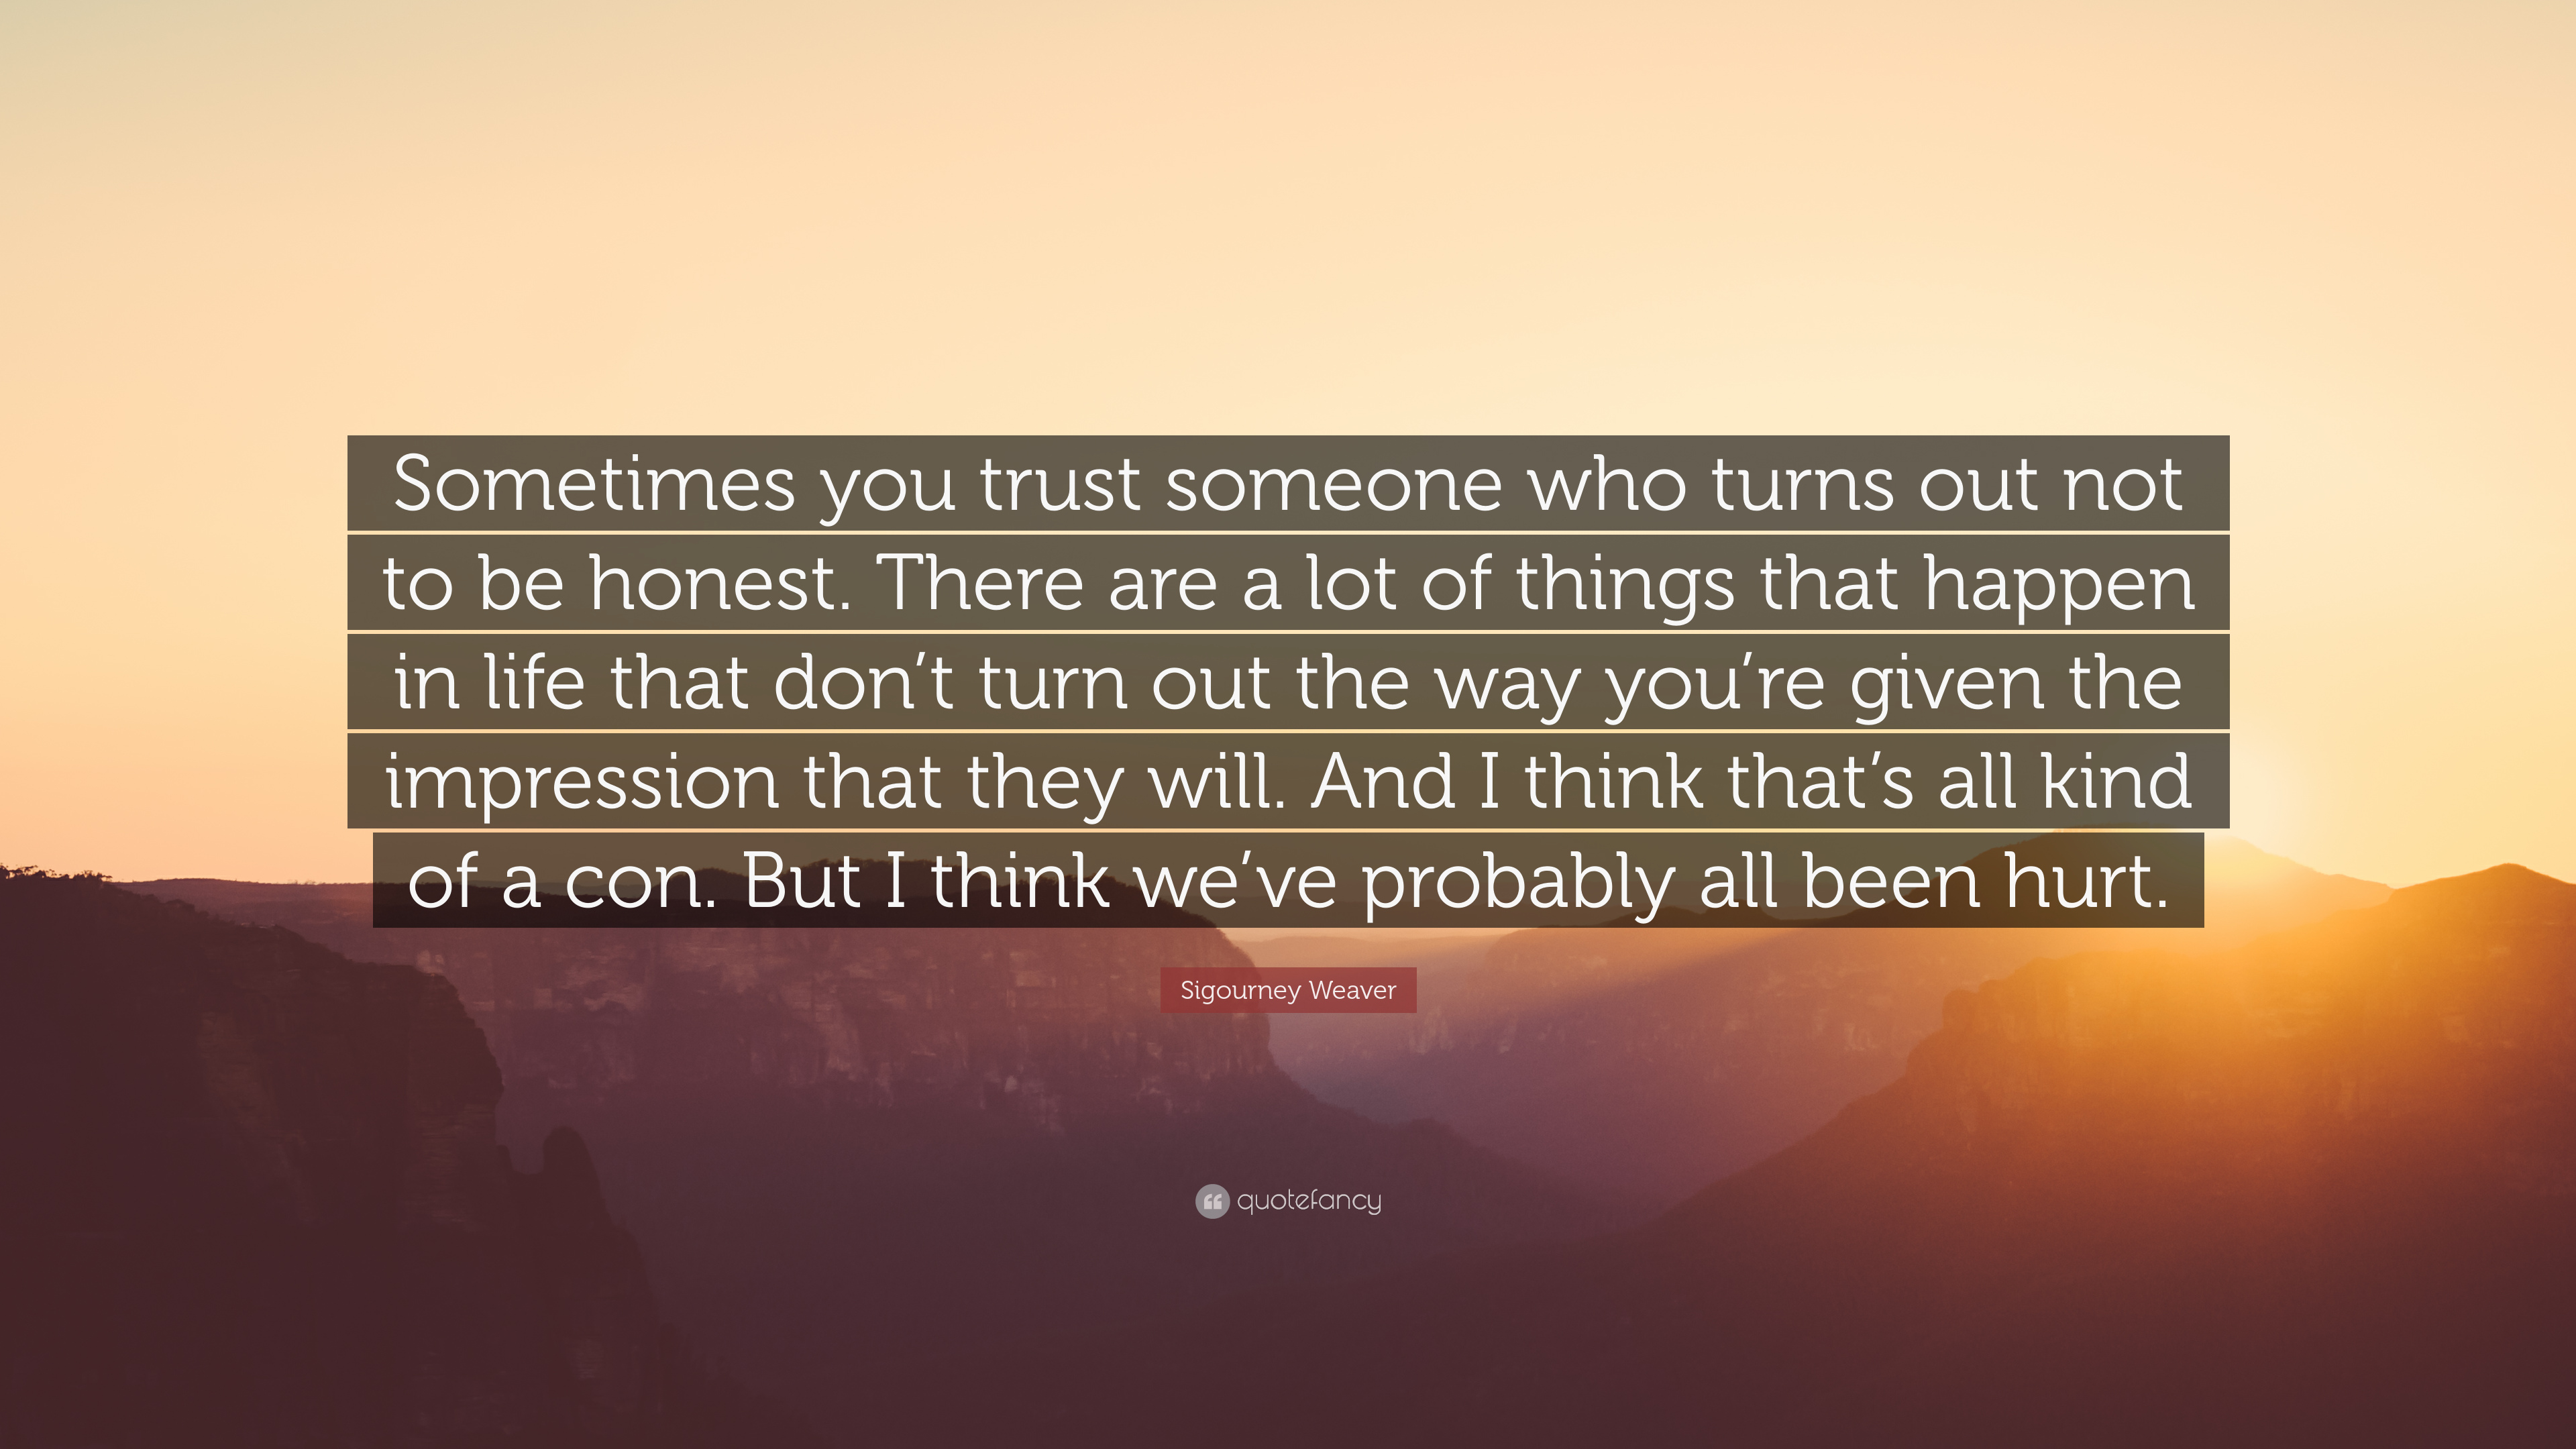 when you trust someone